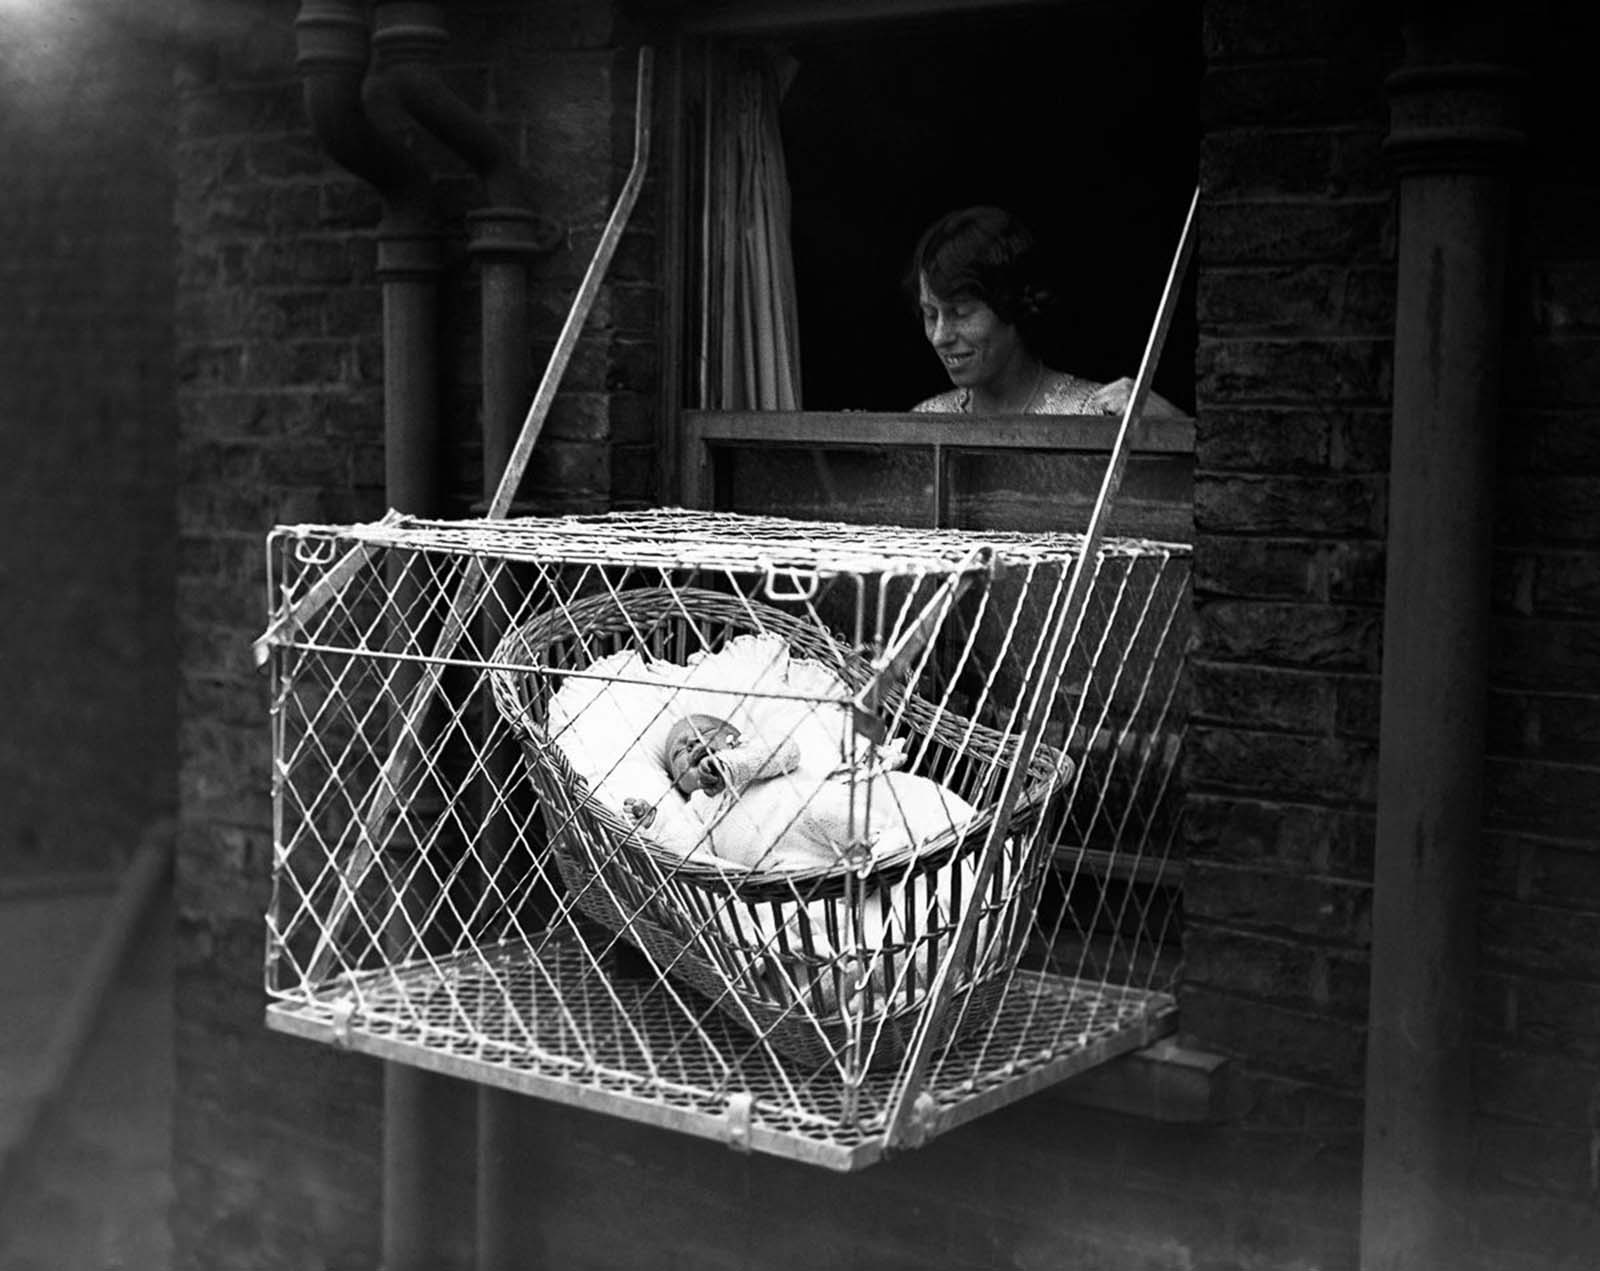 The fad proved to have some staying power, they even produced pun-filled promotional video espousing the benefits of baby cages. 1940.